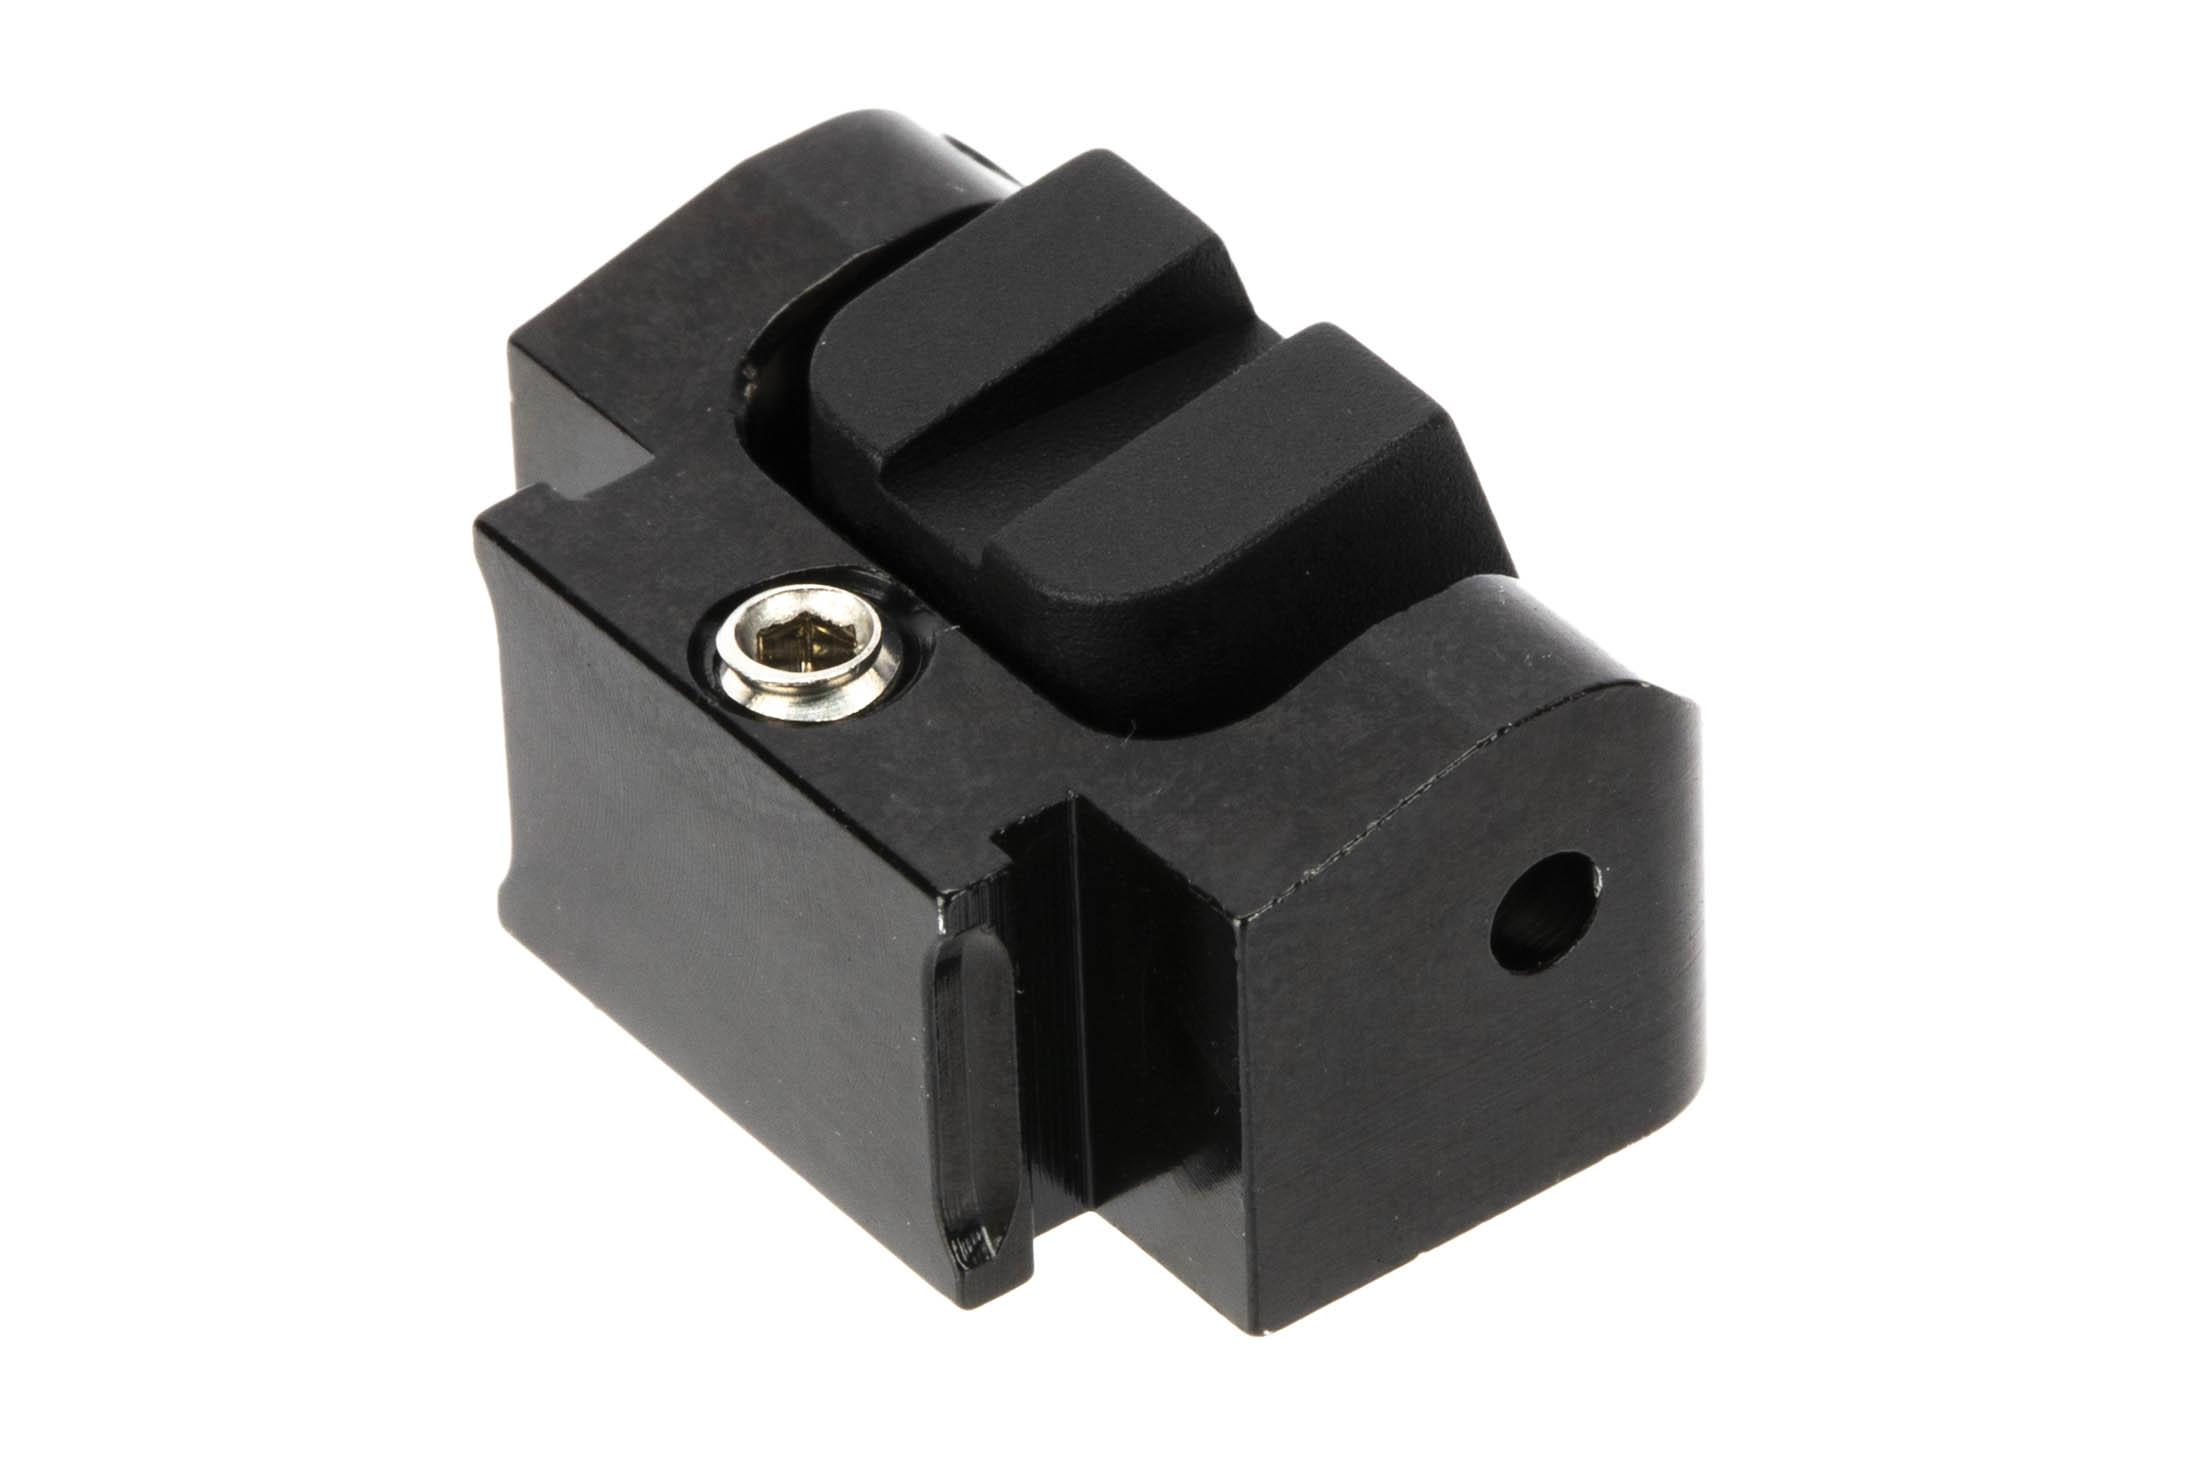 Leupold DeltaPoint Pro Rear Iron Pistol Sight